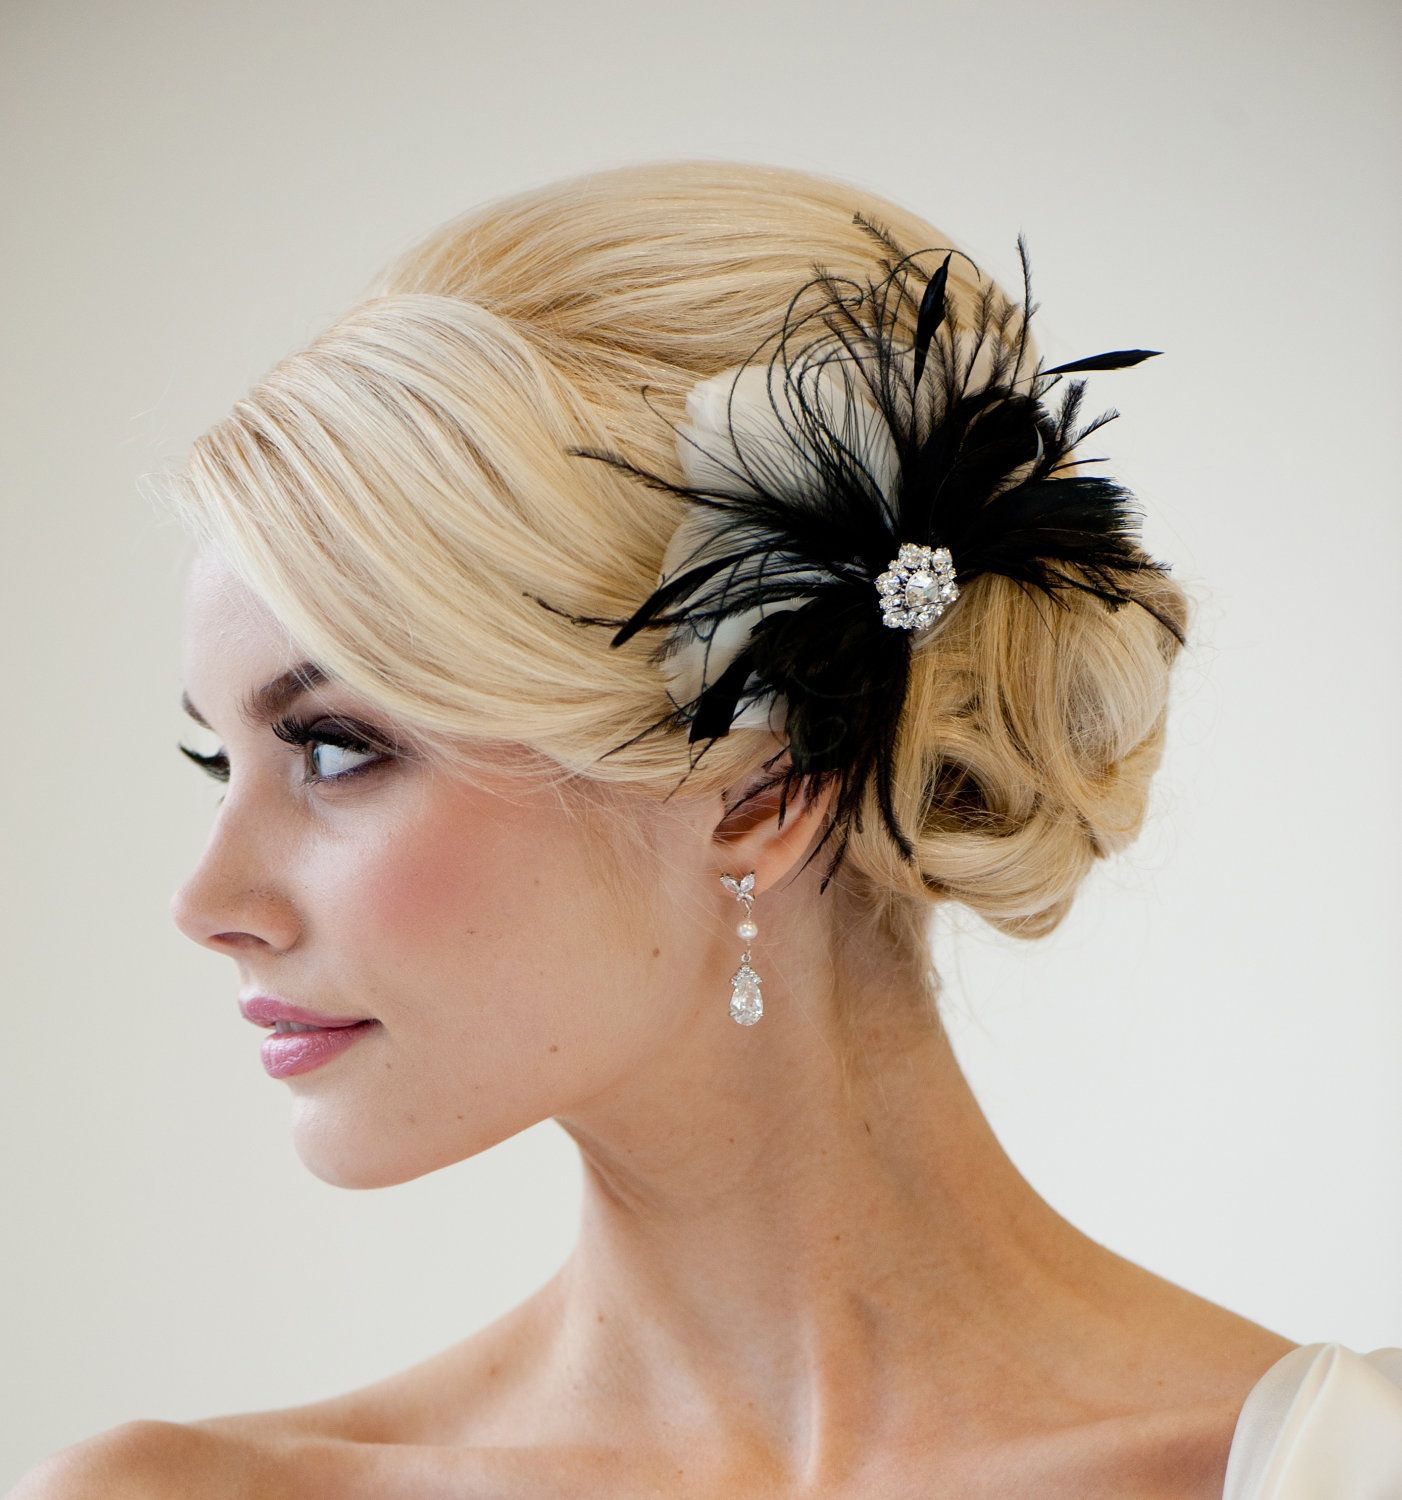 Bridal Fascinator Wedding Hair Accessory Feather Fascinator Black Fascinator - DELPHINE. Etsy ...